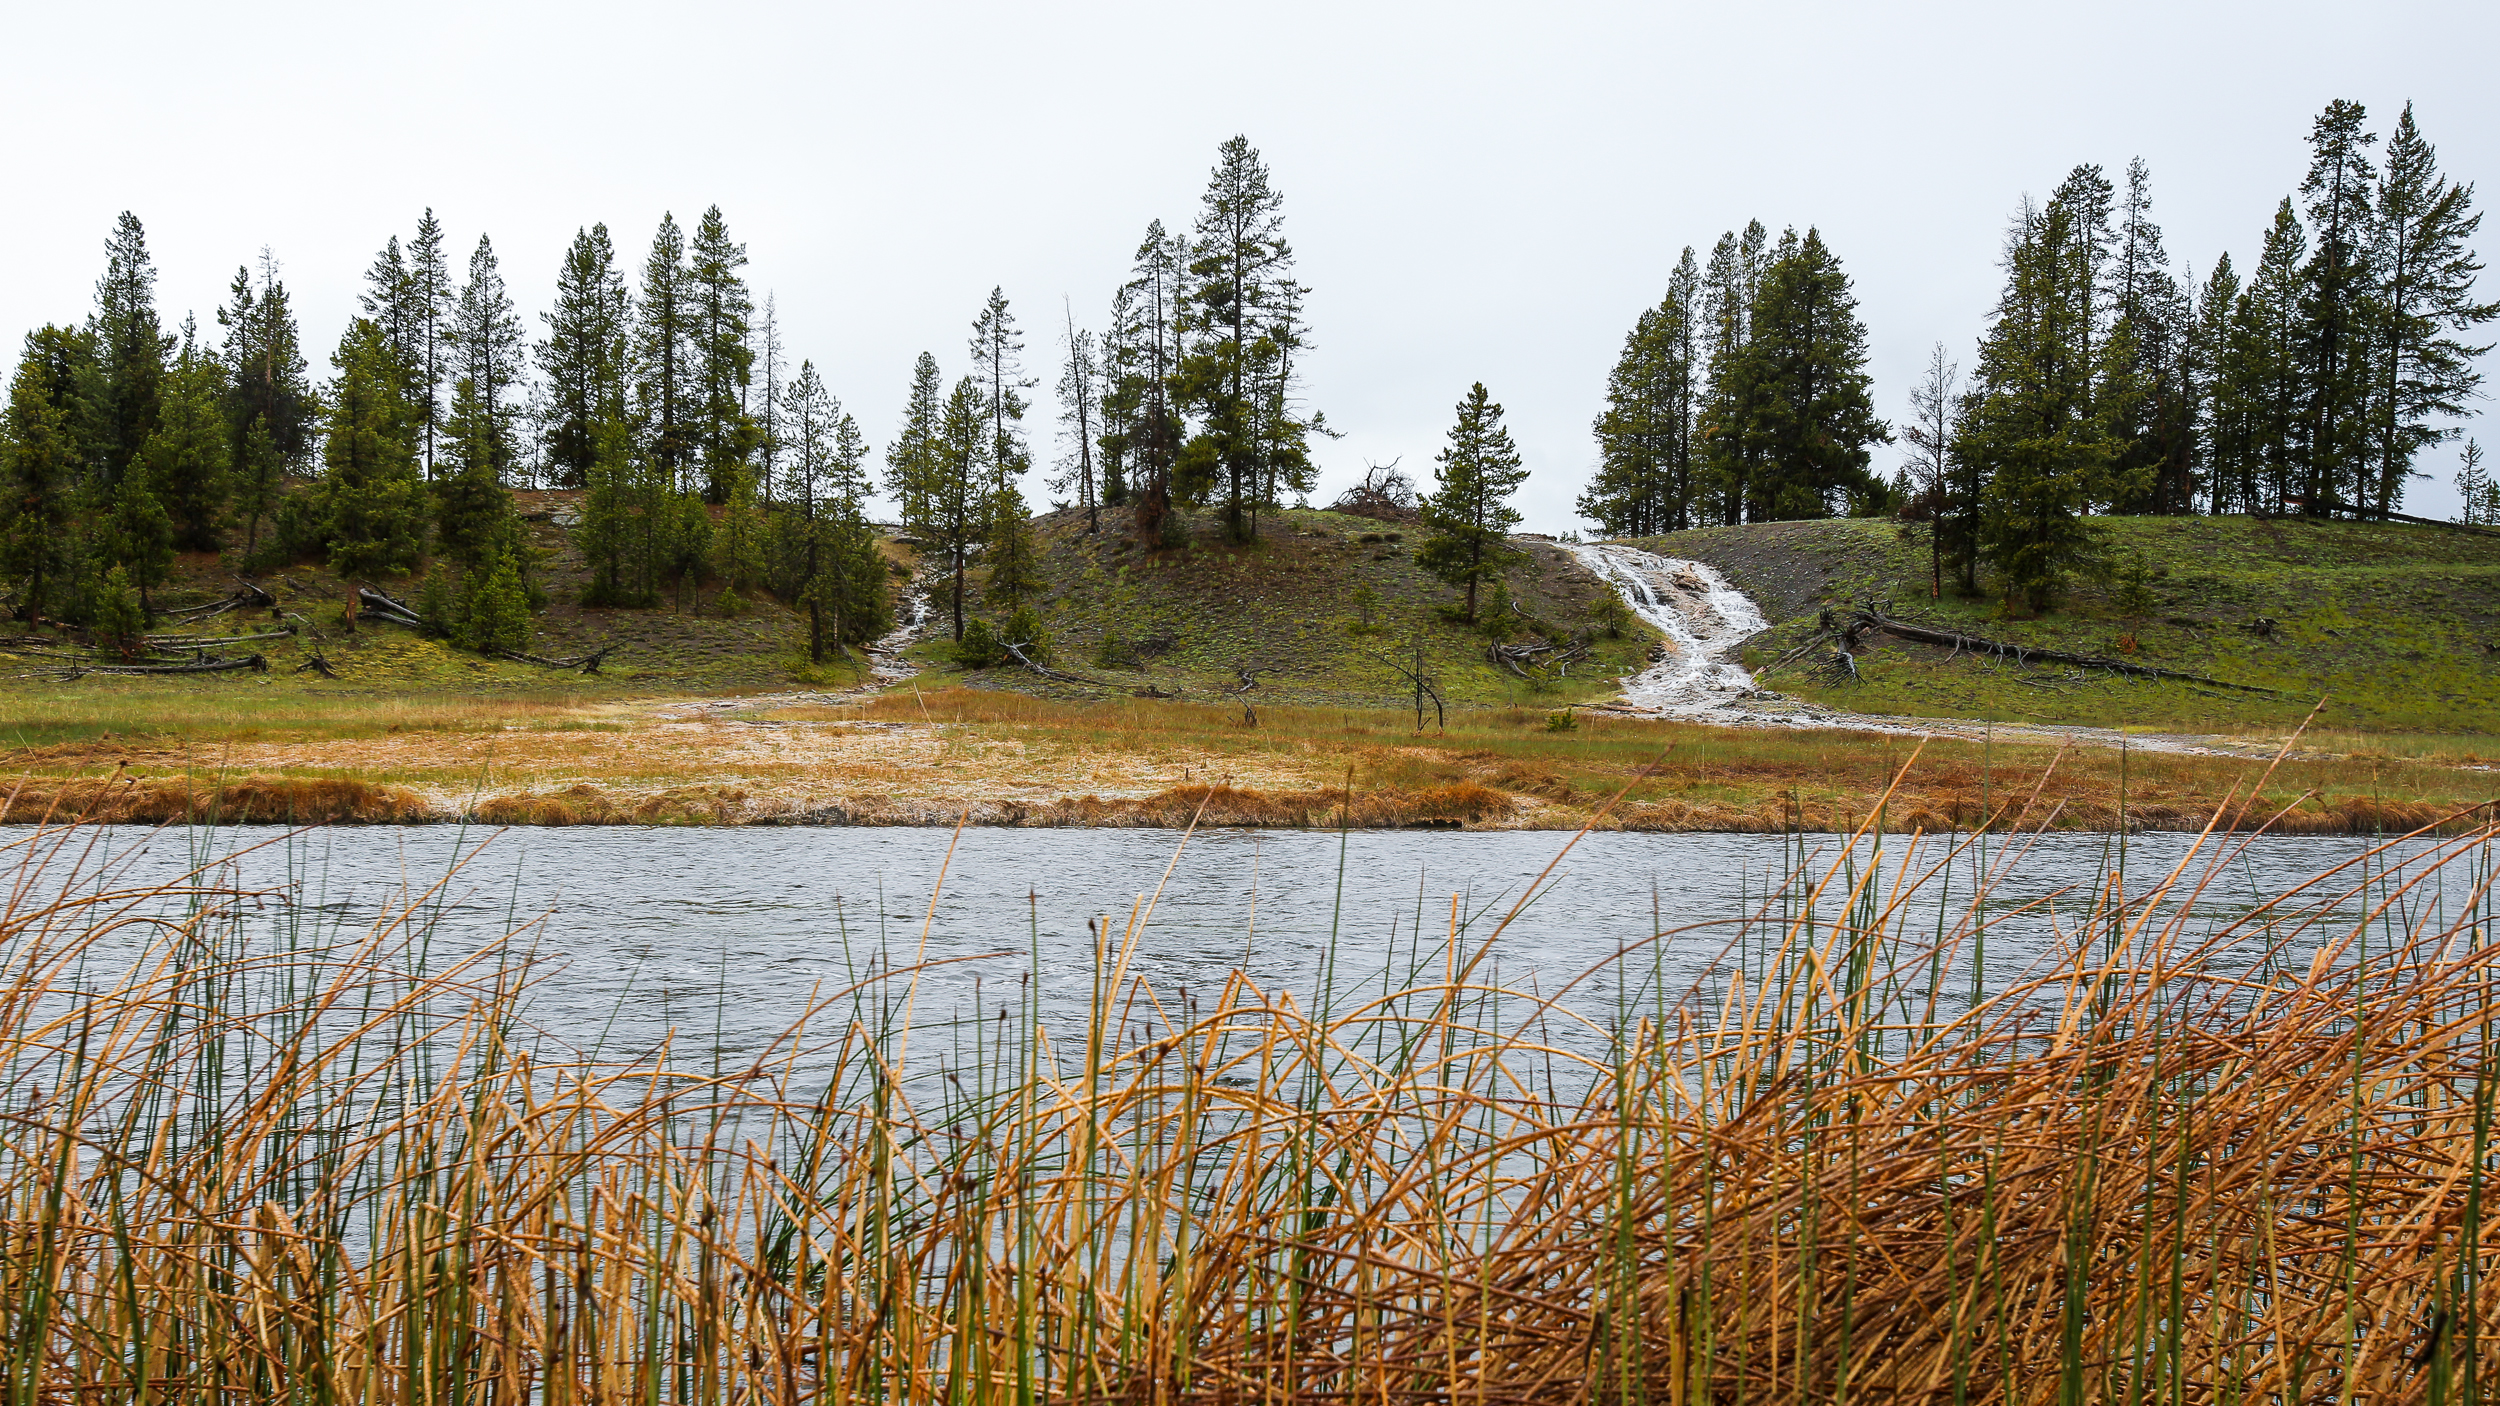 Run-off into Firehole River